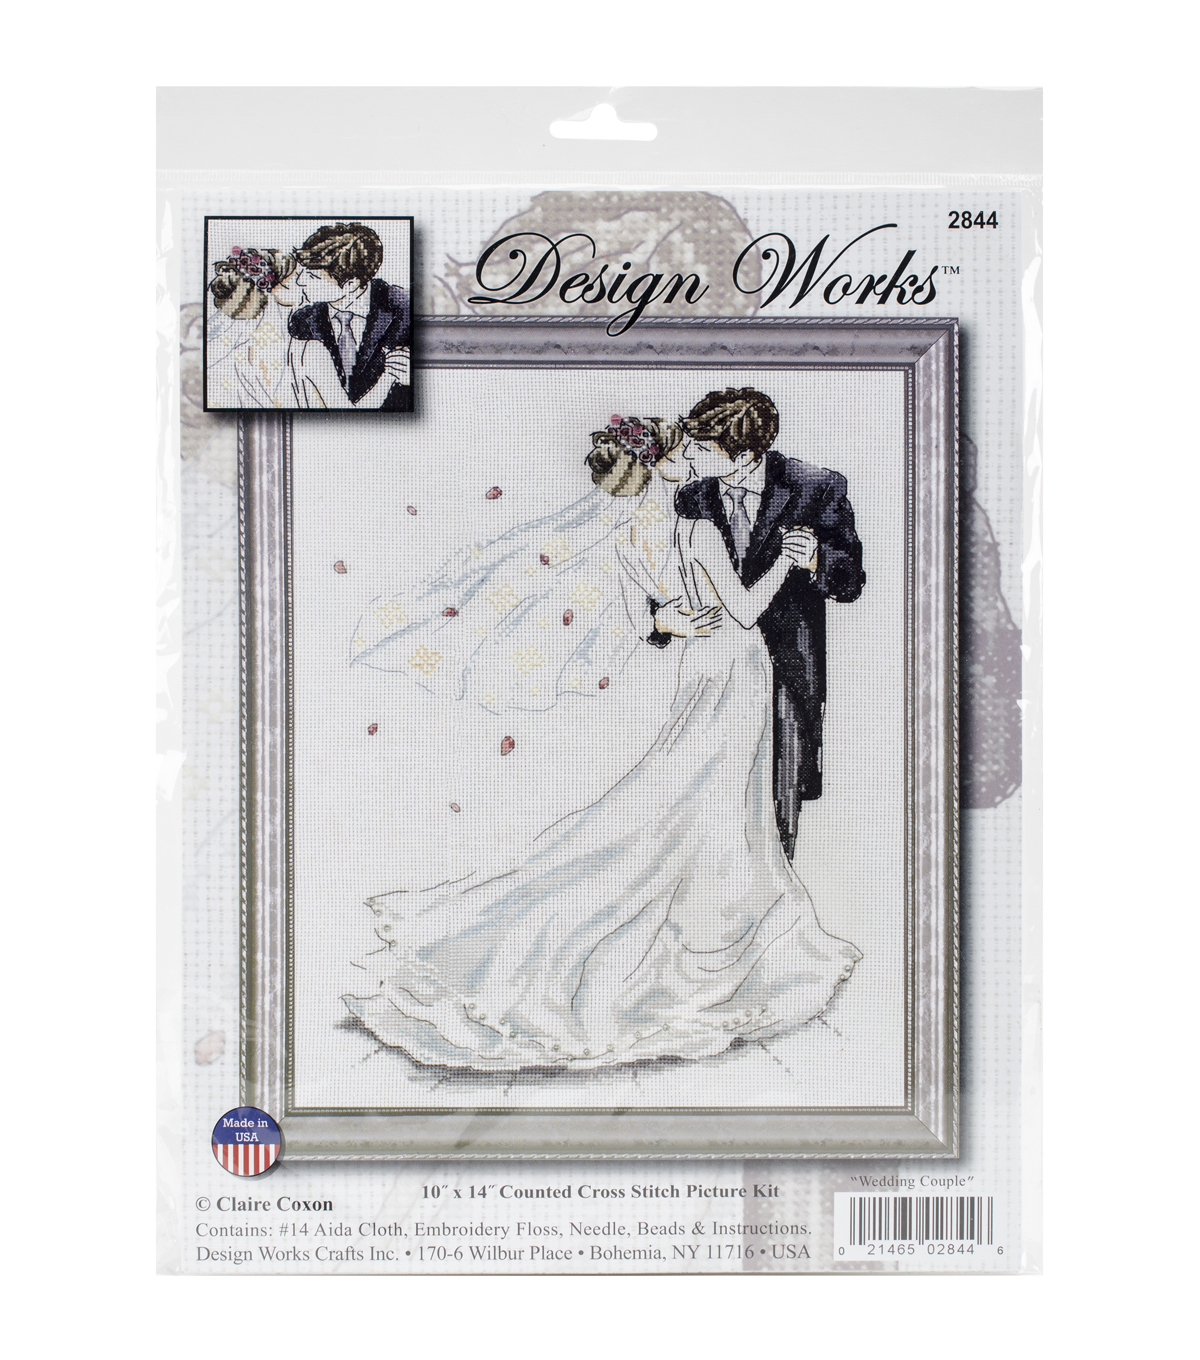 Design Works Wedding Couple Counted Cross Stitch Kit